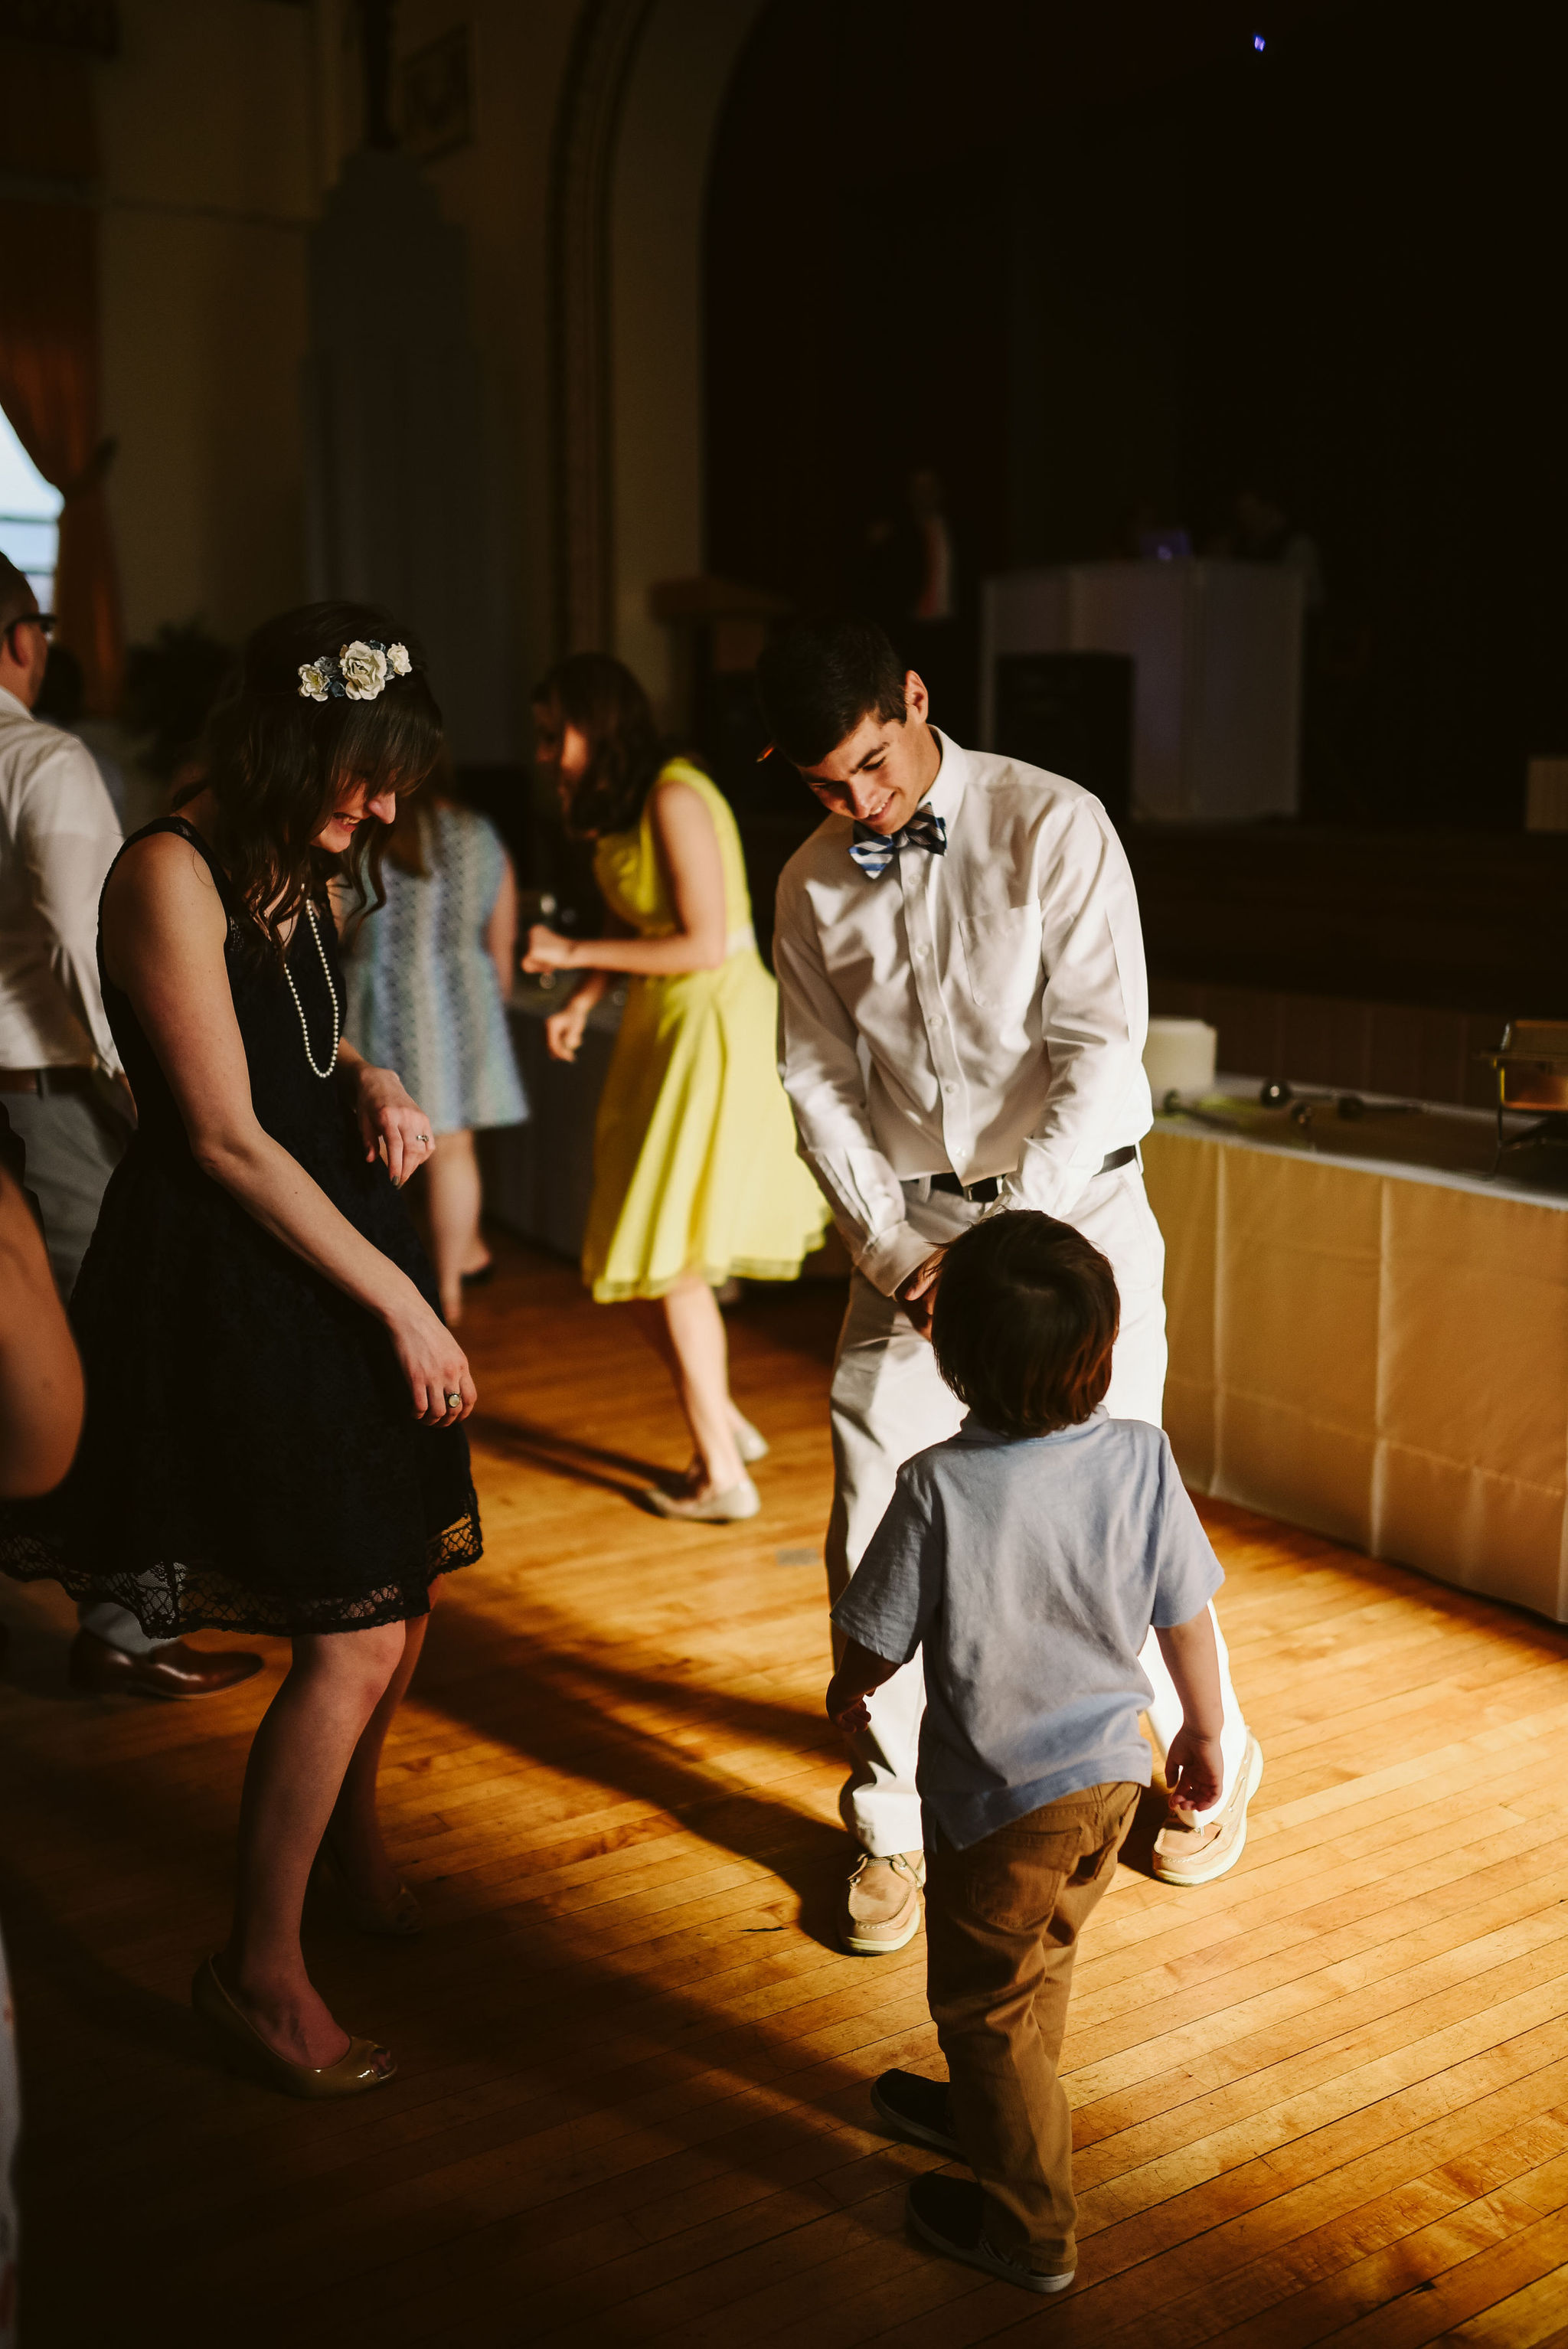 Baltimore, Lithuanian Dance Hall, Maryland Wedding Photographer, Vintage, Classic, 50s Style, Wedding Guests Dancing with Child at Reception